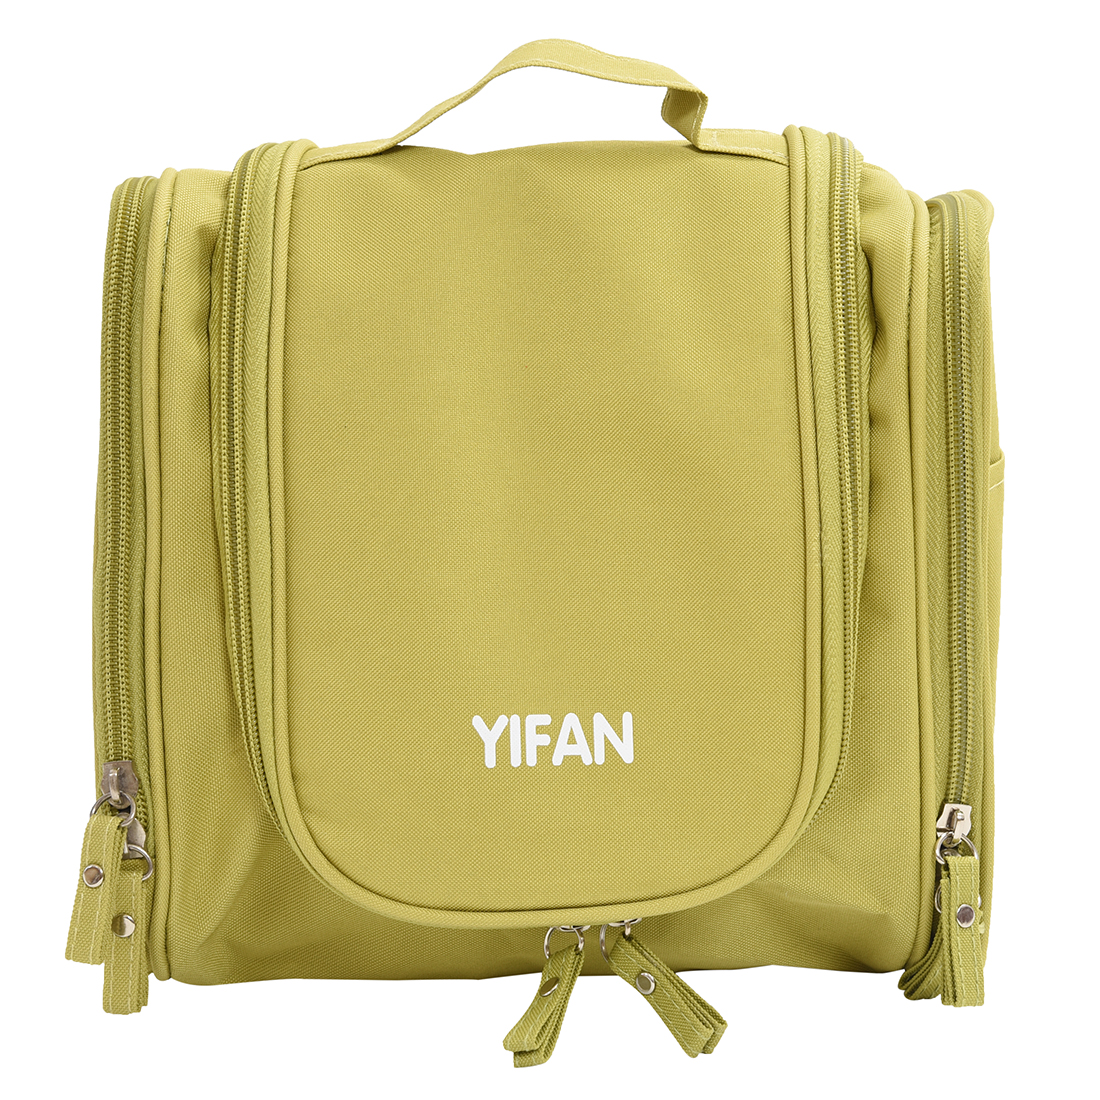 yifan New Travel Toiletry Wash Cosmetic Bag Makeup Storage Case Hanging Grooming